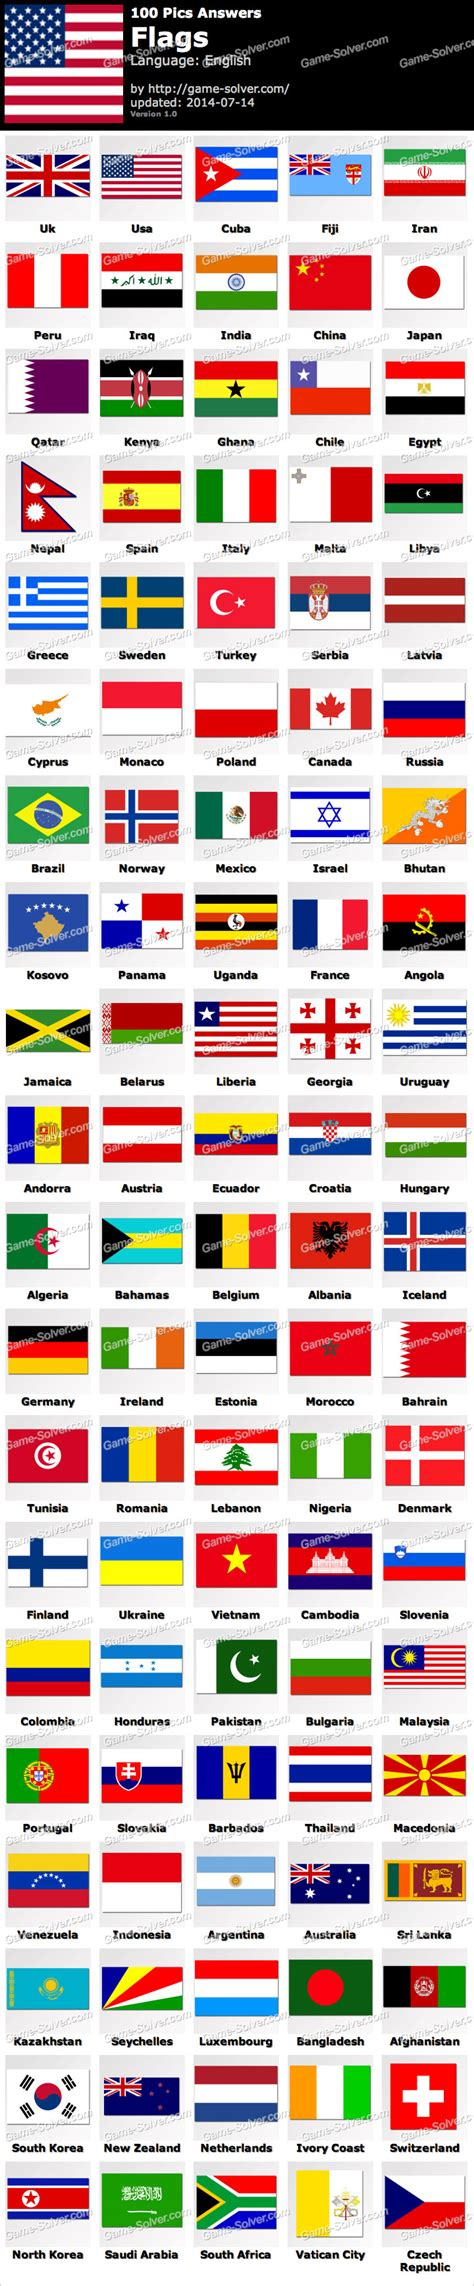 flags of the world game answers 100 pics flags game solver